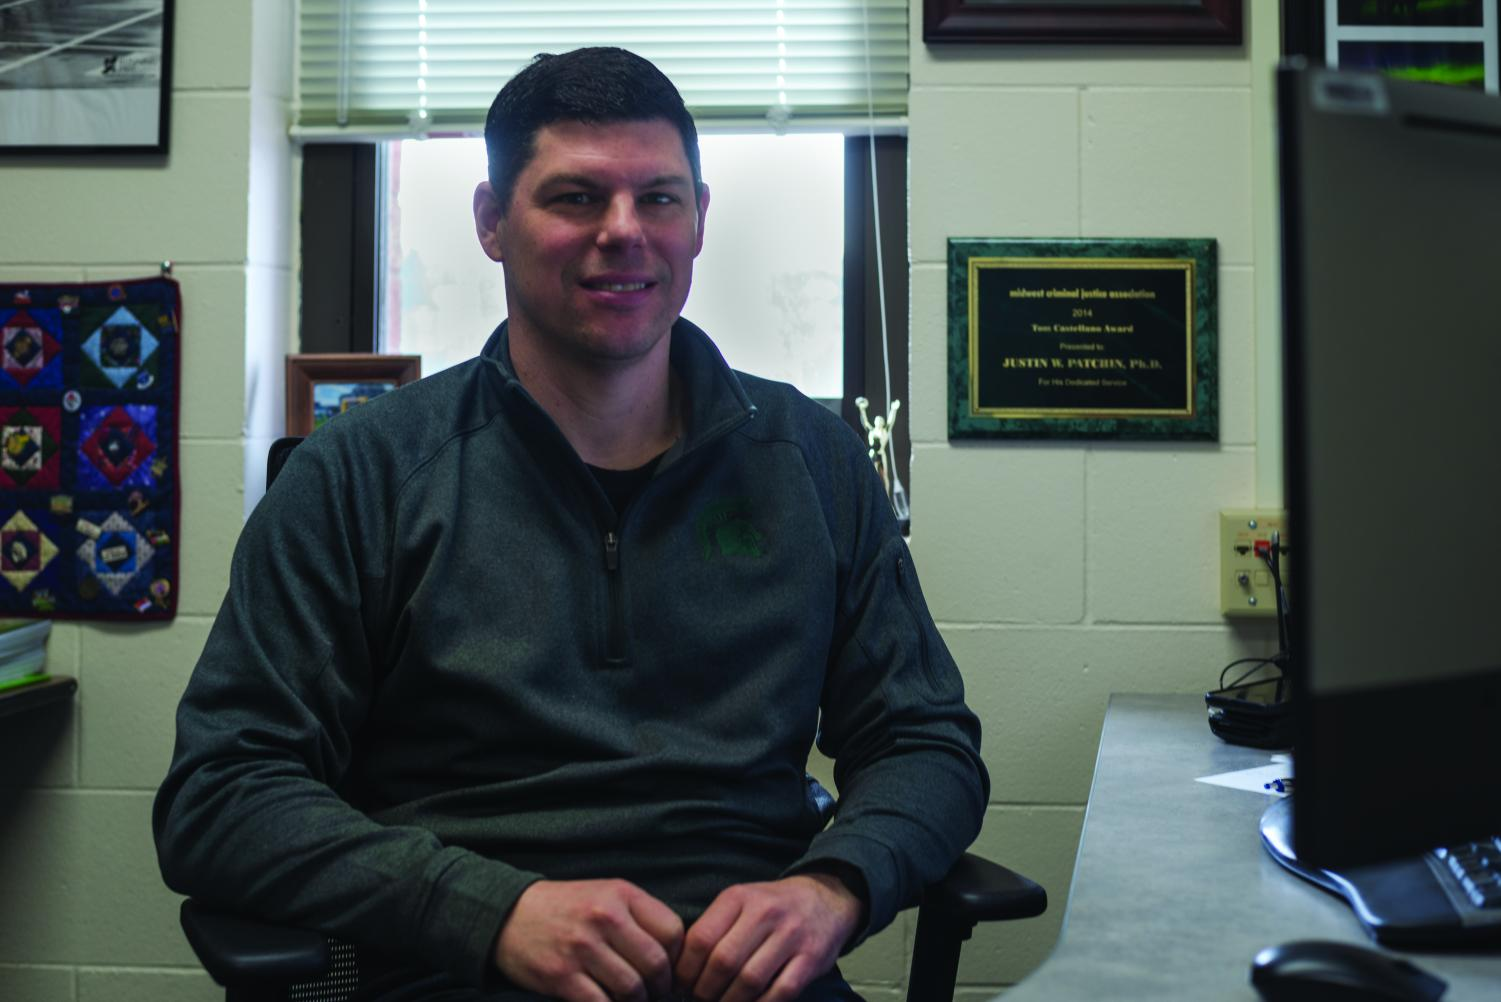 Justin Patchin, an assistant professor of criminal justice at UW-Eau Claire, is the co-director of the       Cyberbullying Research Center and has presented at conferences all across the world.